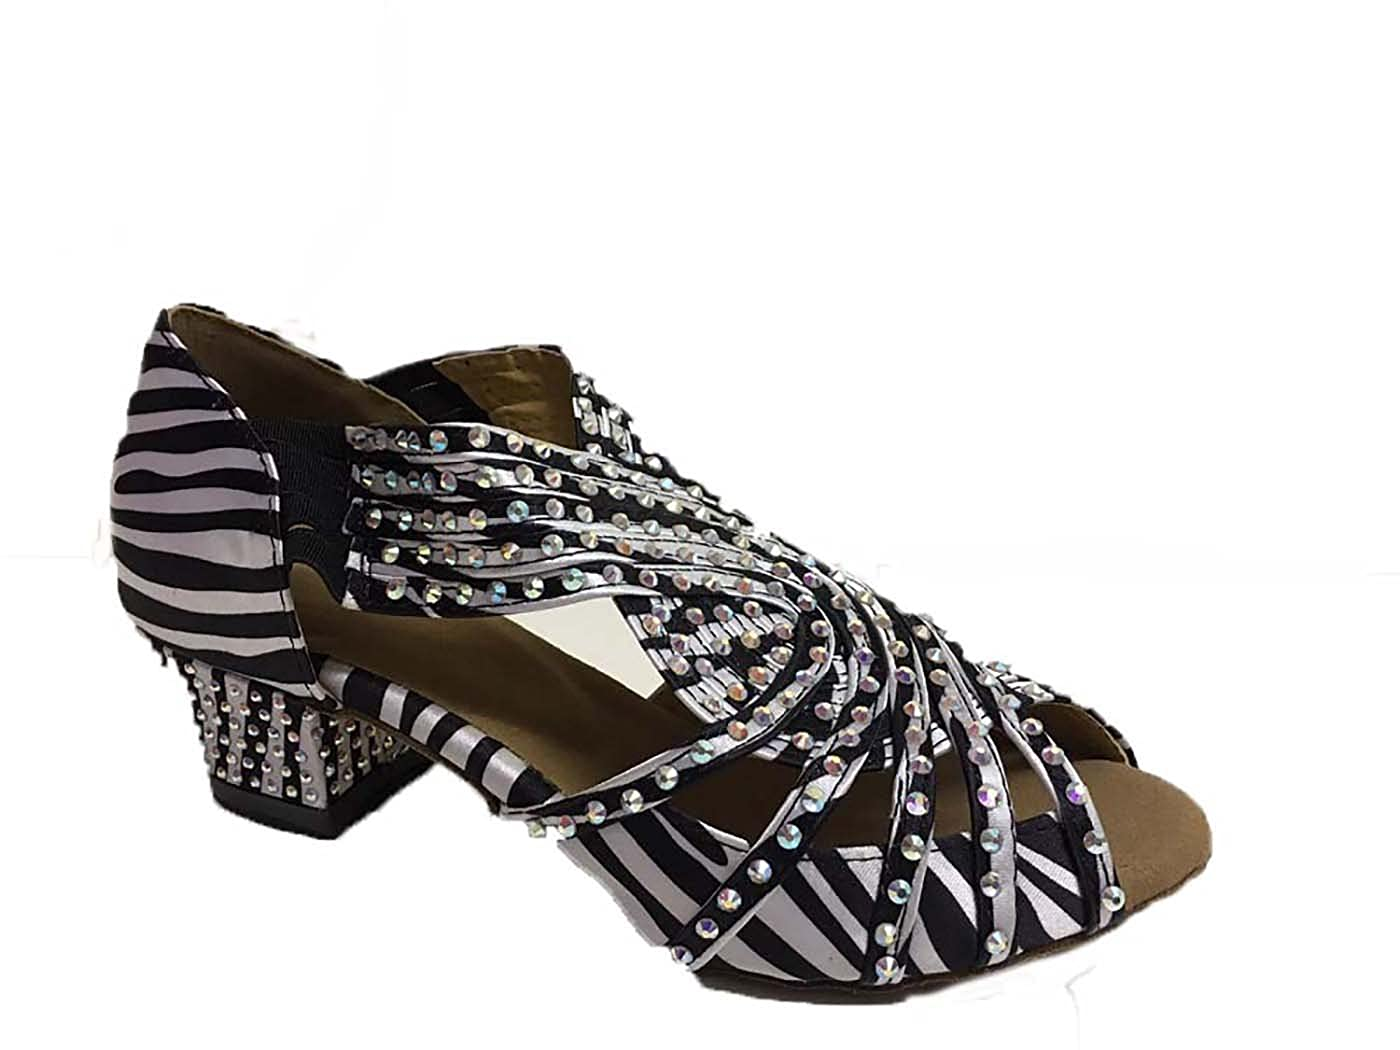 5b0b727a11fd8 Zebra Black and White Shoe - Satin and Aurora Stones with Suede Sole, Open  Toe Dance Shoes for Line, Latin, Ballroom, Jive, Ceroc, Salsa & Tango UK ...